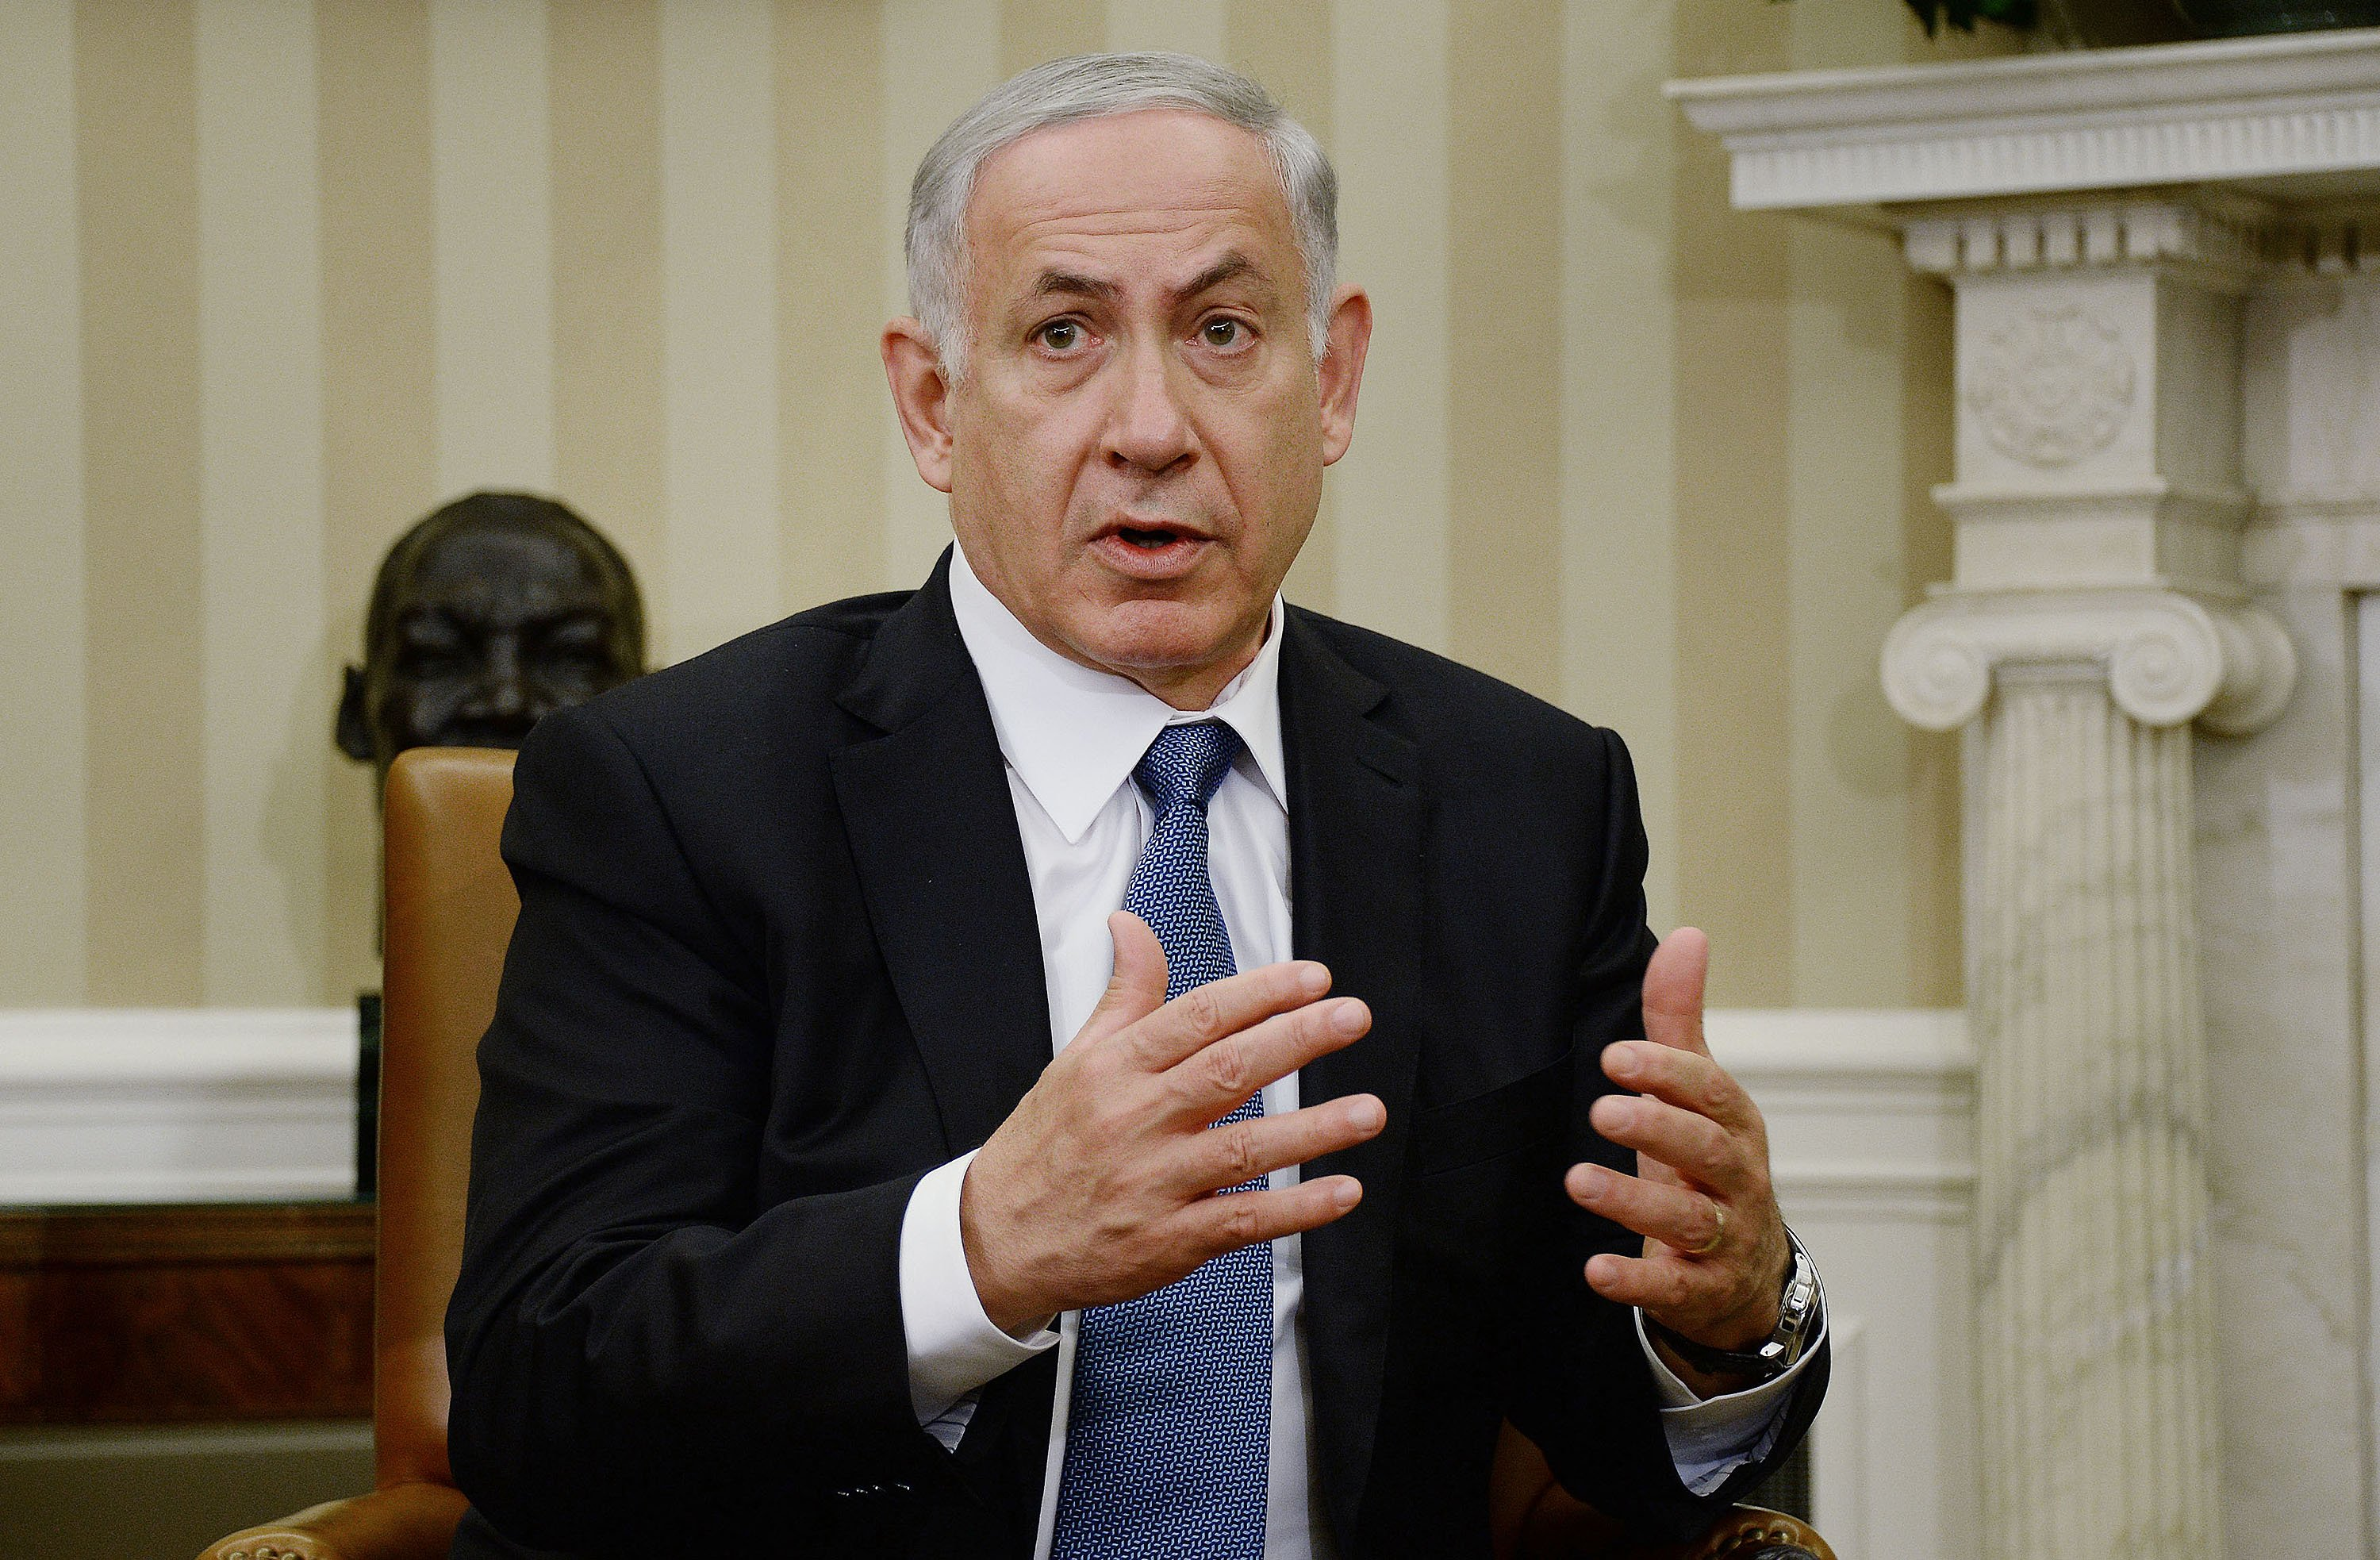 Prime Minister Benjamin Netanyahu of Israel in the Oval Office of the White House on Oct. 1, 2014 in Washington, DC.